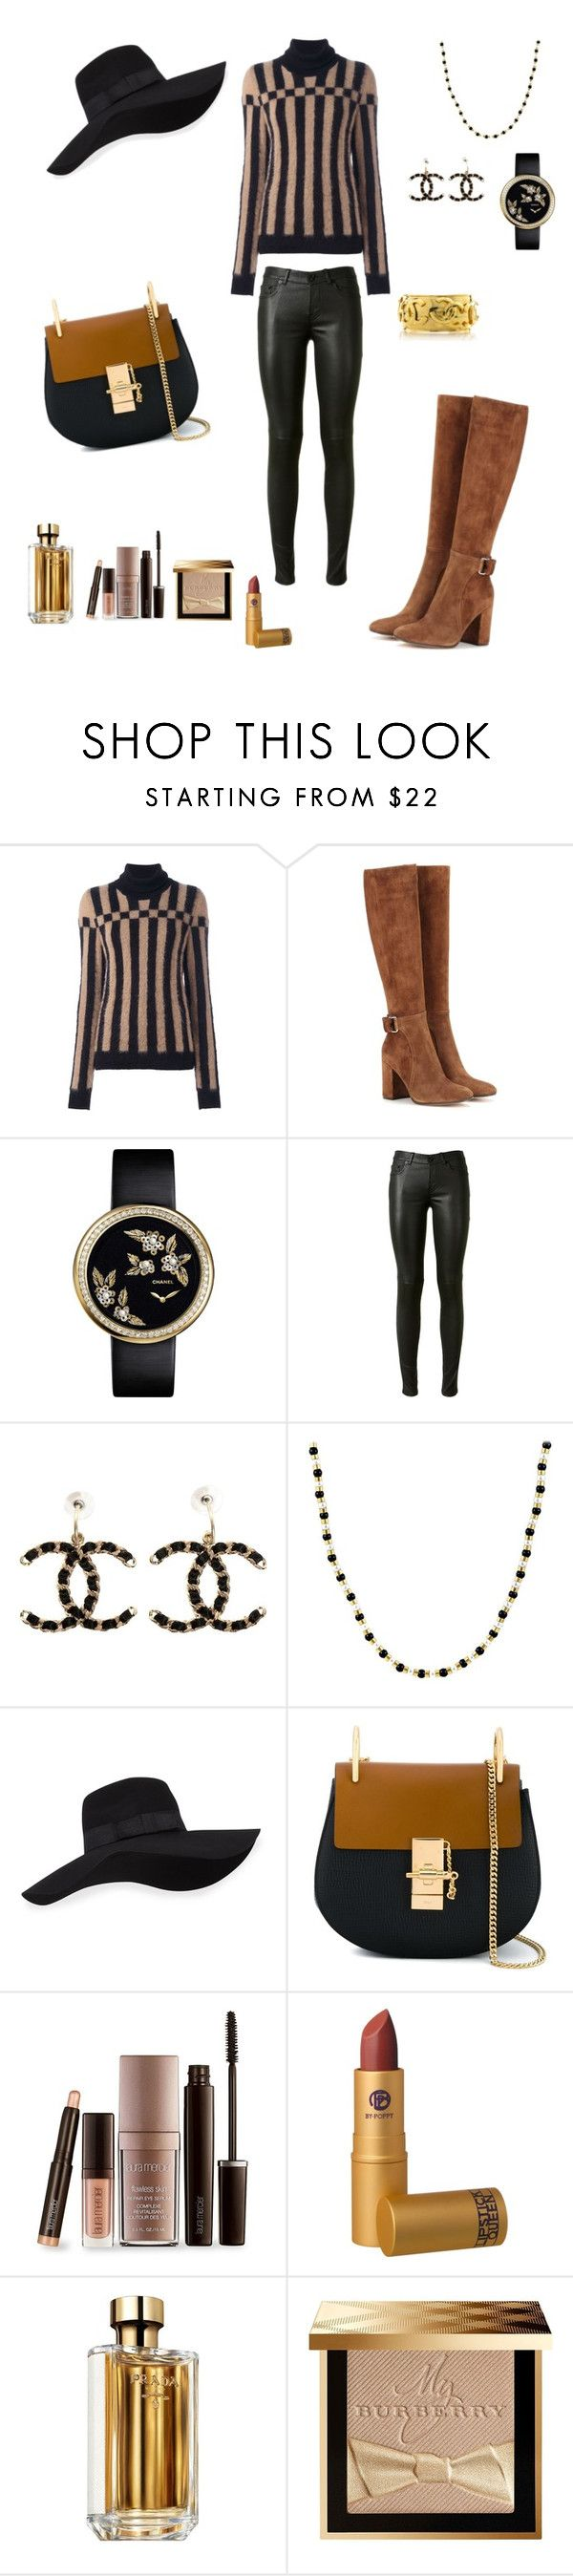 """""""Black & Brown"""" by soniauk ❤ liked on Polyvore featuring Loewe, Gianvito Rossi, Yves Saint Laurent, Chanel, San Diego Hat Co., Chloé, Laura Mercier, Lipstick Queen, Prada and Burberry"""